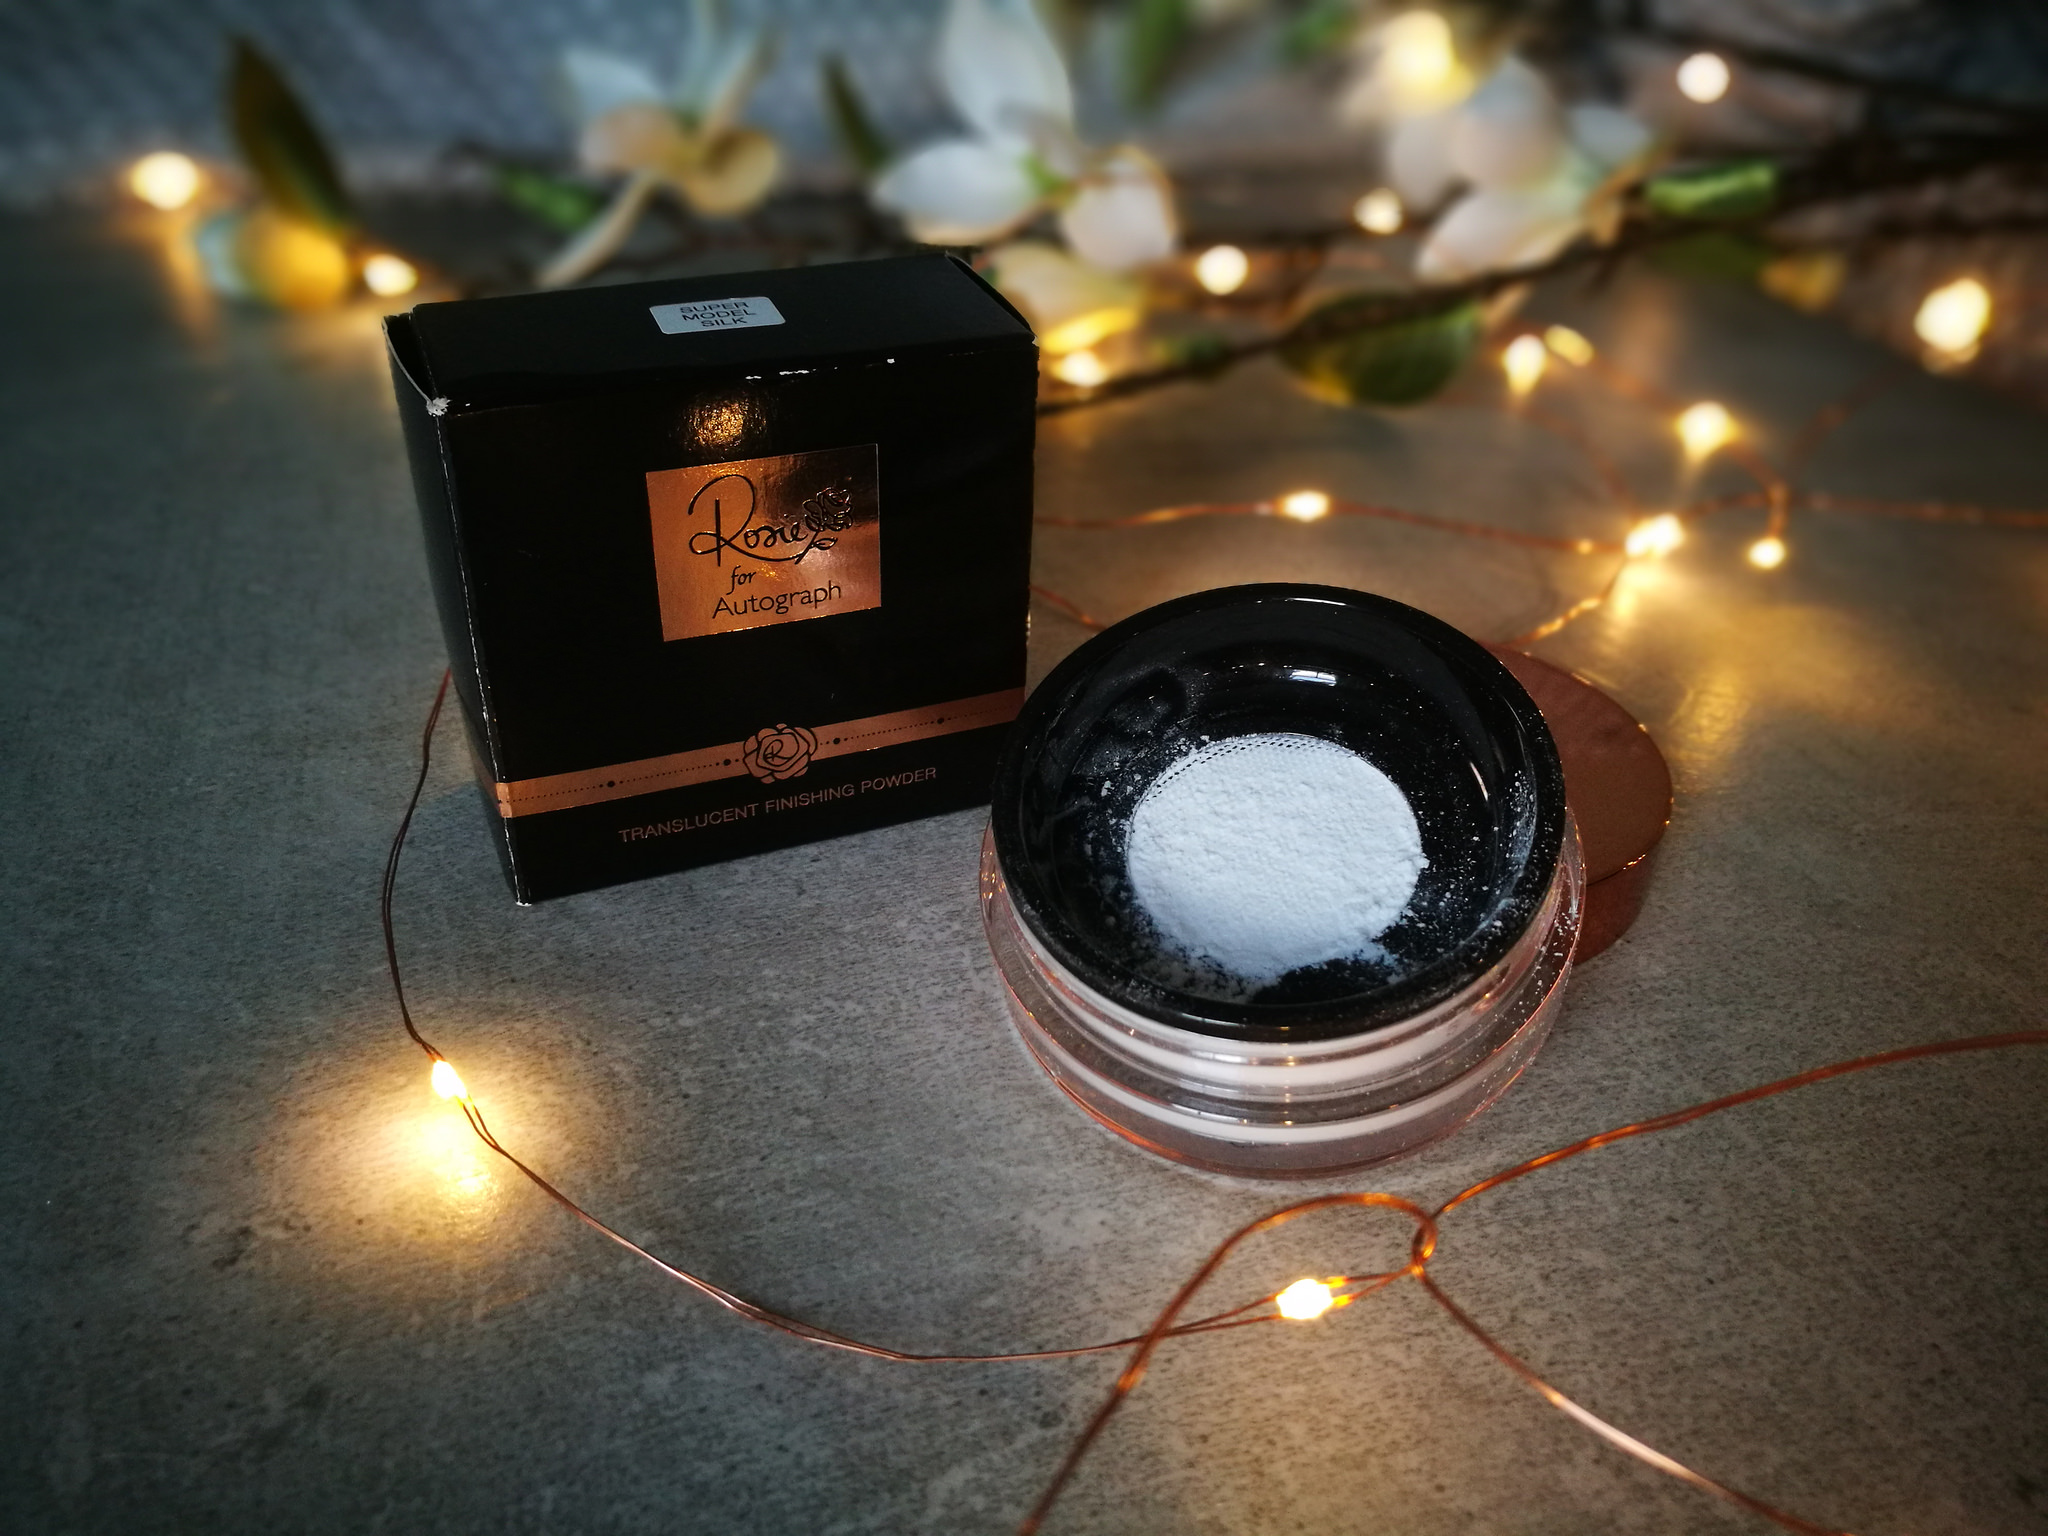 Rosie for Autograph, Translucent finishing powder